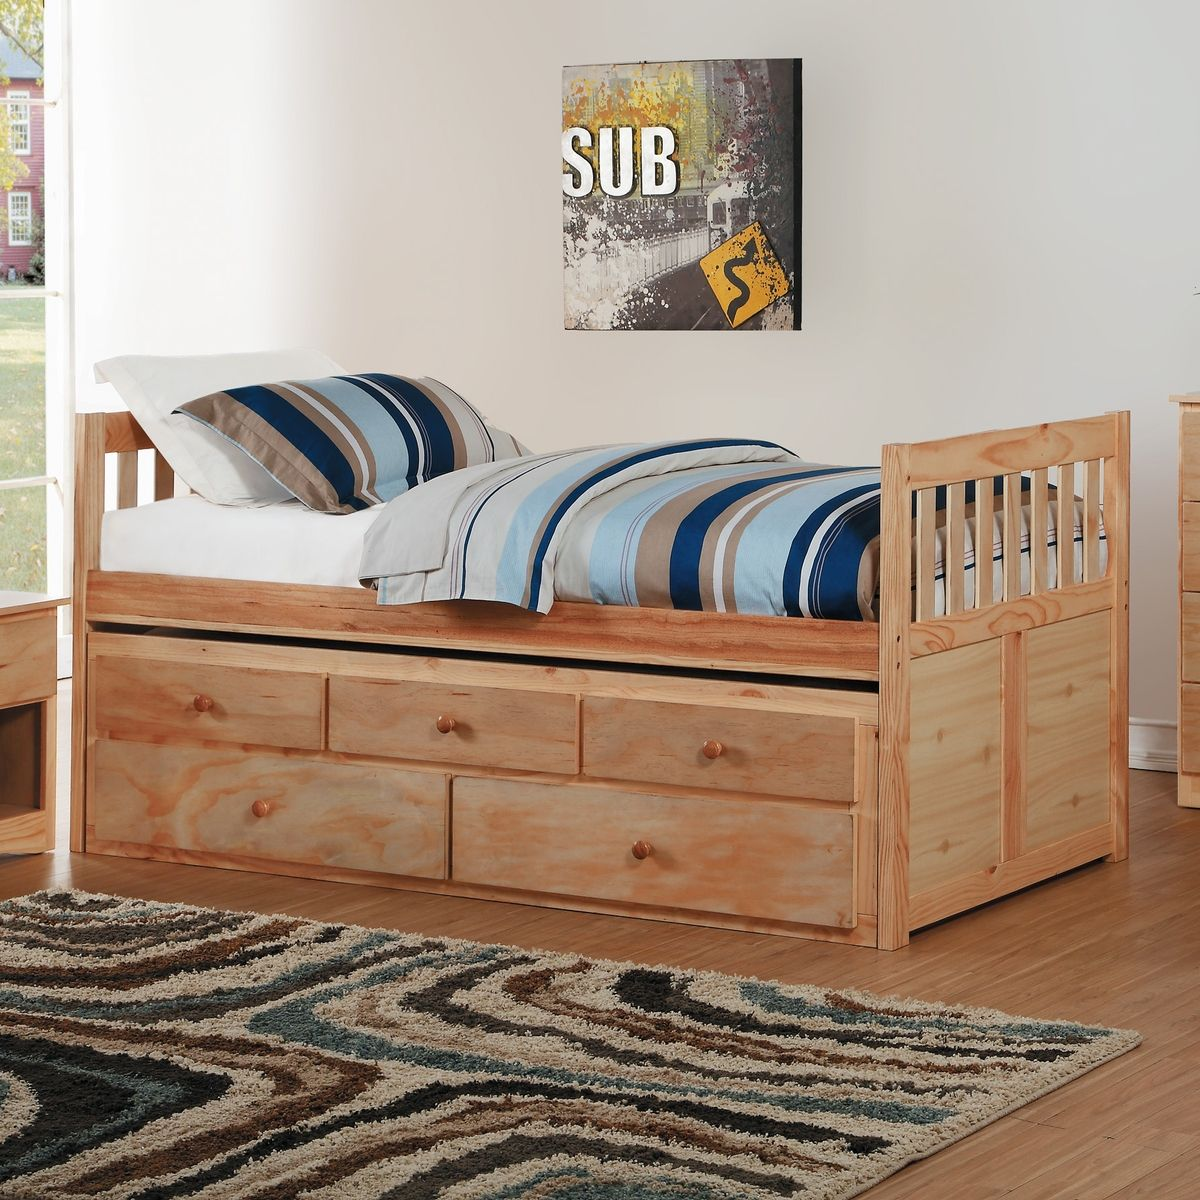 Bartly Wood Trundle Bed w/Storage Drawers, Twin/Twin Size